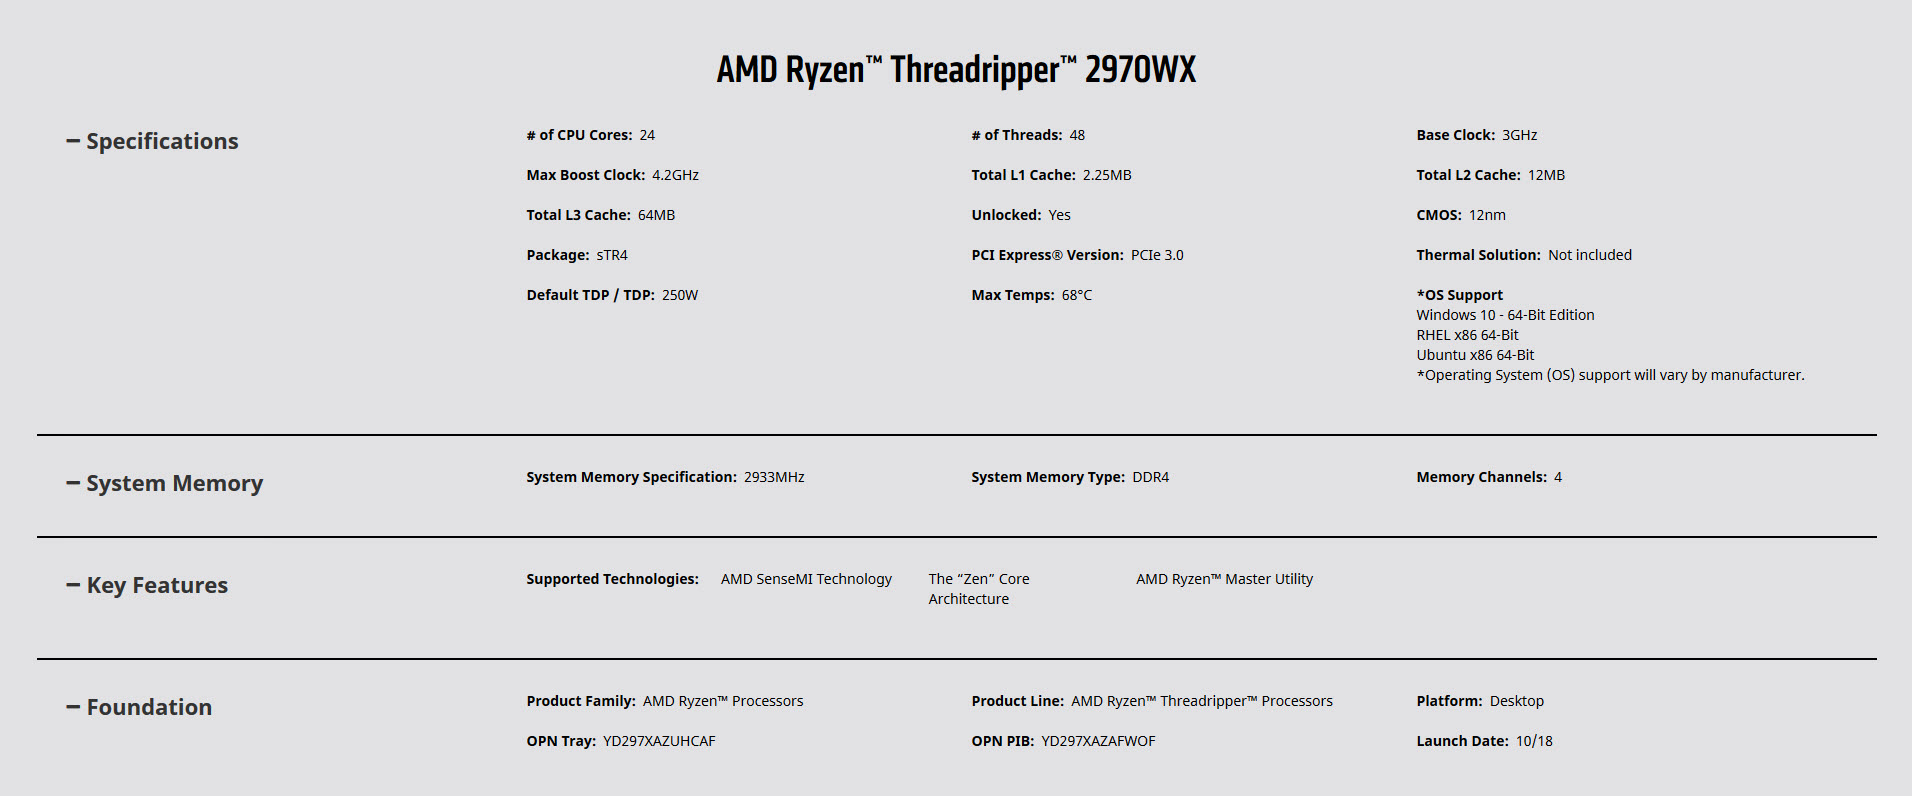 2019 04 28 18 09 57 AMD RYZEN THREADRIPPER 2970WX PROCESSOR REVIEW